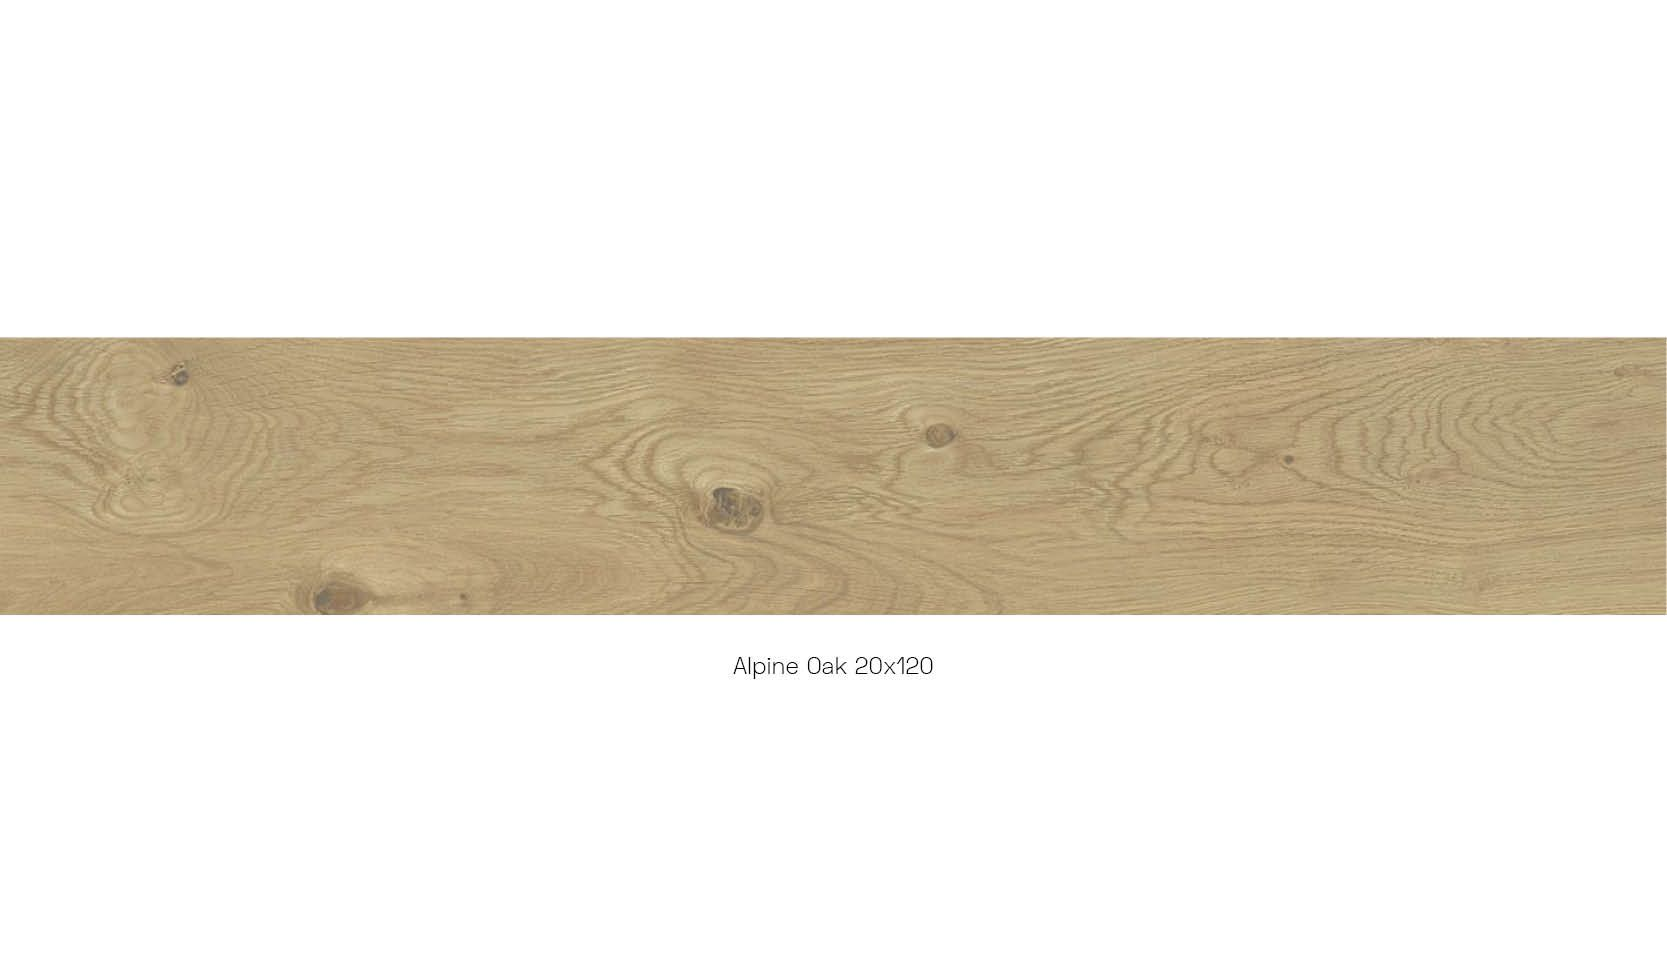 Alpine oak 20 x 120